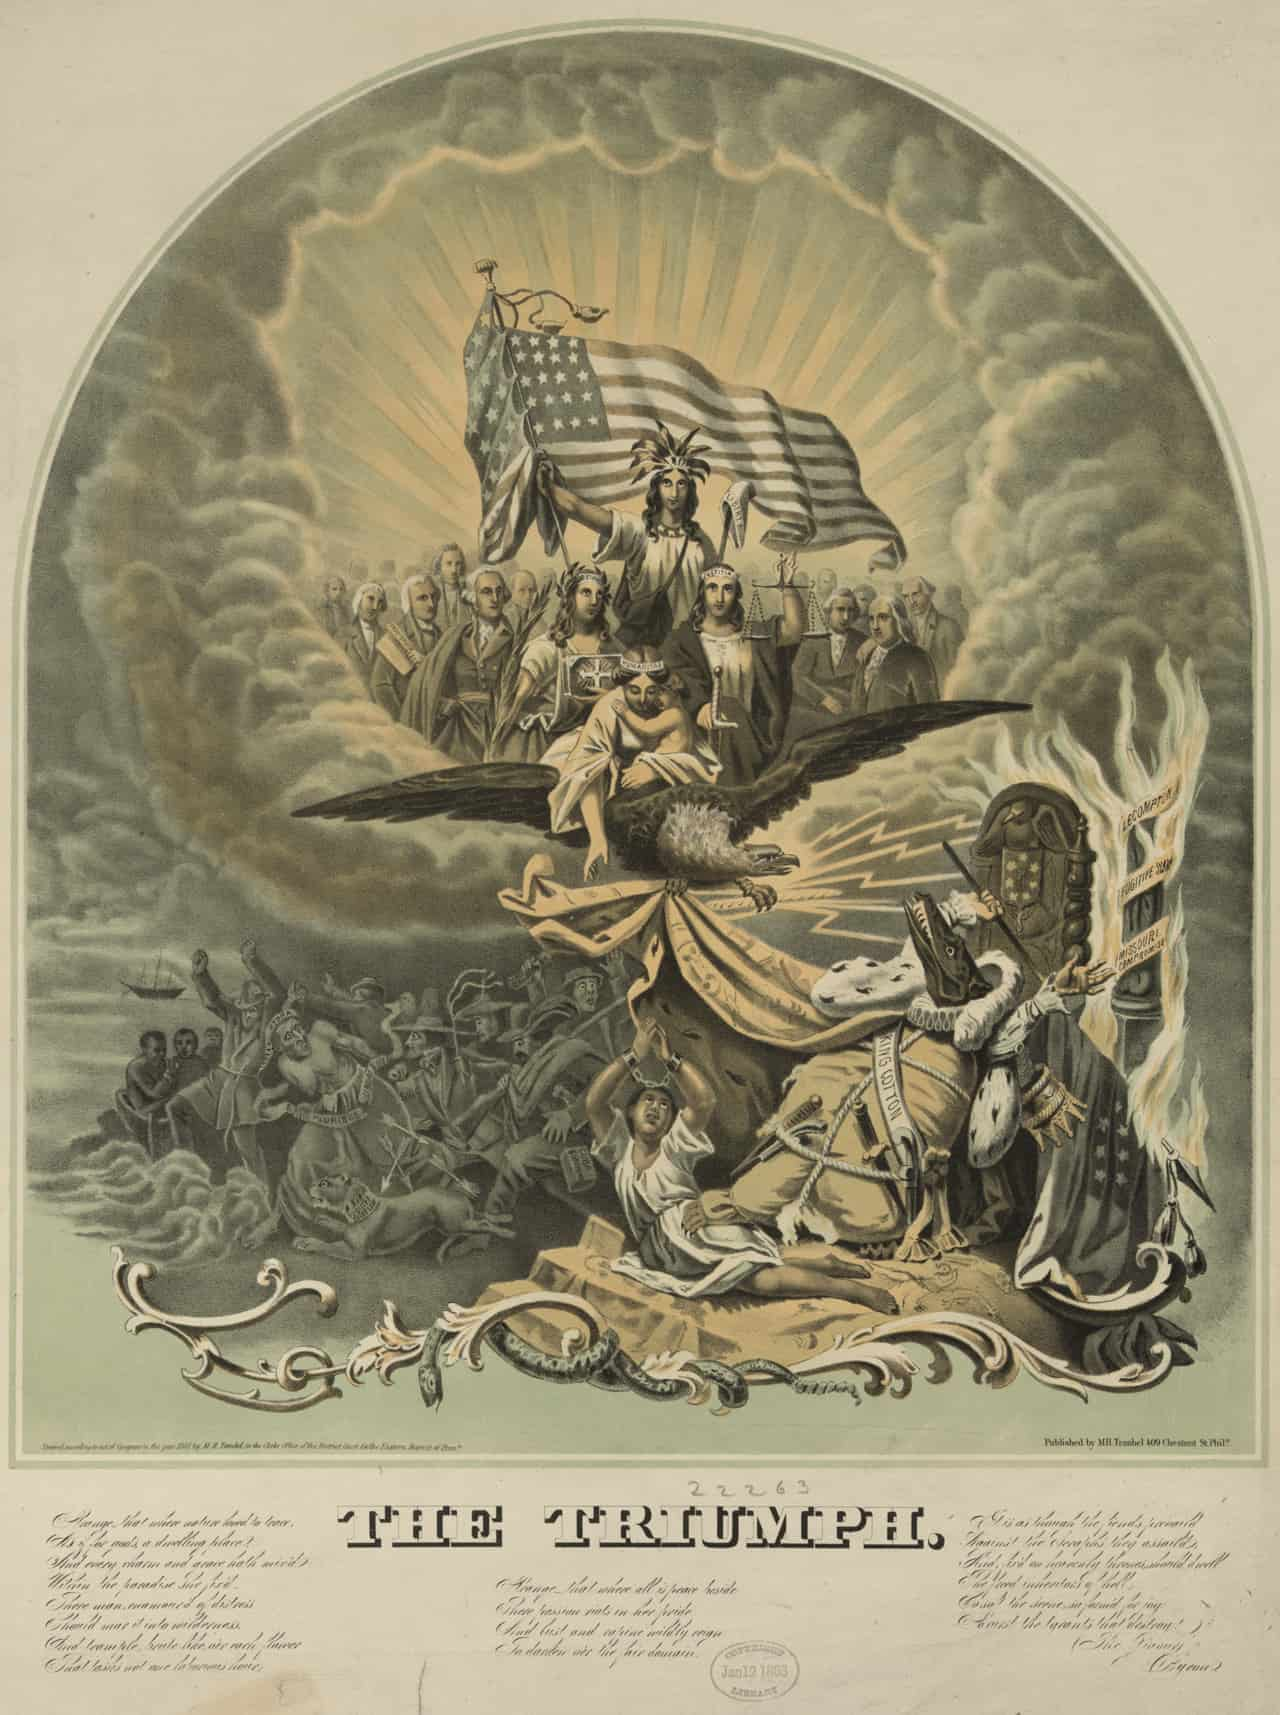 """This large, detailed allegory predicts the triumph of the Union over the dark forces of the Confederacy and """"King Cotton."""" The accompanying key, seen below the image, describes the secession of the South in intensely moralistic terms, as the machinations of a cunning """"Hydra of human discord"""" that produces treachery and rebellion. The image can be divided into a lower and upper half. In the lower, the forces of darkness are ruled by King Cotton, pictured here as Below are the forces of darkness ruled over by King Cotton, shown here as an alligator-headed monarch with a body of a cotton sack. The terrifying monster sits on a throne next to a burning column with the words """"Lecompton"""" (the controversial proslavery Kansas constitution passed in 1857), """"Fugitive Slave [Law],"""" and """"Missouri Compromise."""" With pistols and daggers in his belt, King Cotton seemingly maintains control over his land, keeping a paw on a manacled slave who looks upward toward a """"sublime apparition"""" appearing in clouds the clouds above. Here Freedom, wearing an Indian bonnet and holding a liberty cap, appears with a large American flag amid a crowd of deities and historical figures, including George Washington, Benjamin Franklin, and Thomas Jefferson. Christianity (left) and Justice (right) attends Freedom. Immediately in front of her is """"Humanitas,"""" borne by an eagle and holding an infant and reaching towards the supplicant slave below. The eagle fiercely clutches the hem of King Cotton's cloak and wields several lightning bolts, which have ignited the terrified monarch's throne. Other symbols of slavery are terrorized by this vision of the Union's triumph."""